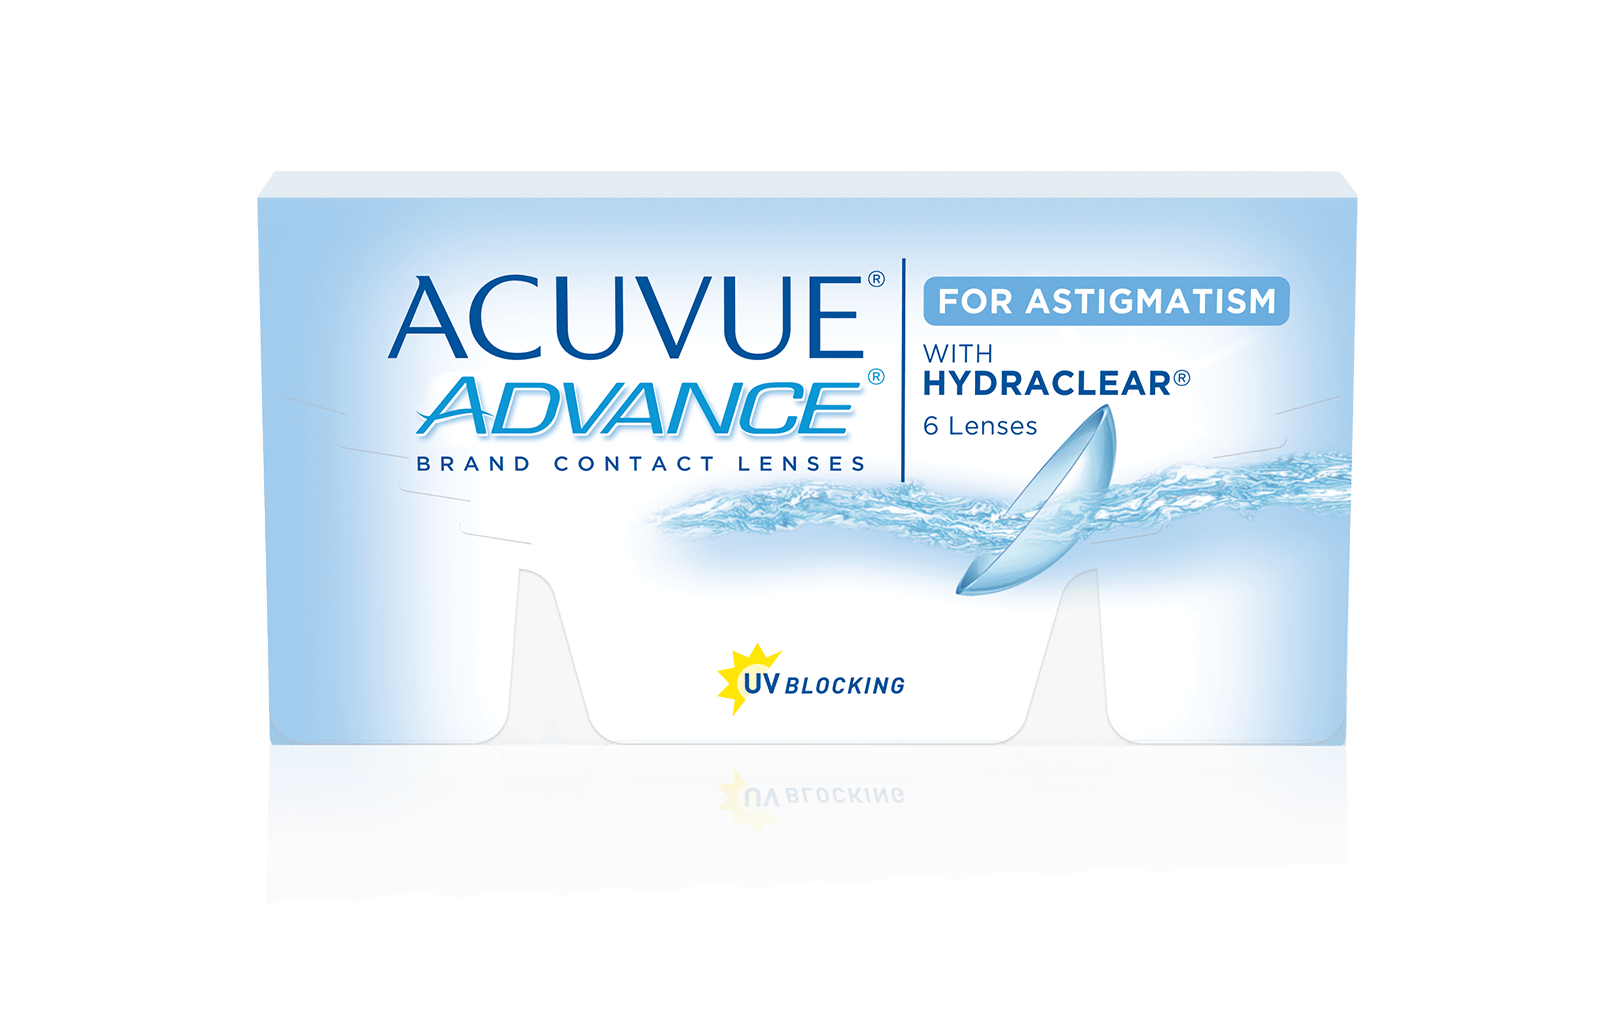 ACUVUE® ADVANCE For Astigmatism